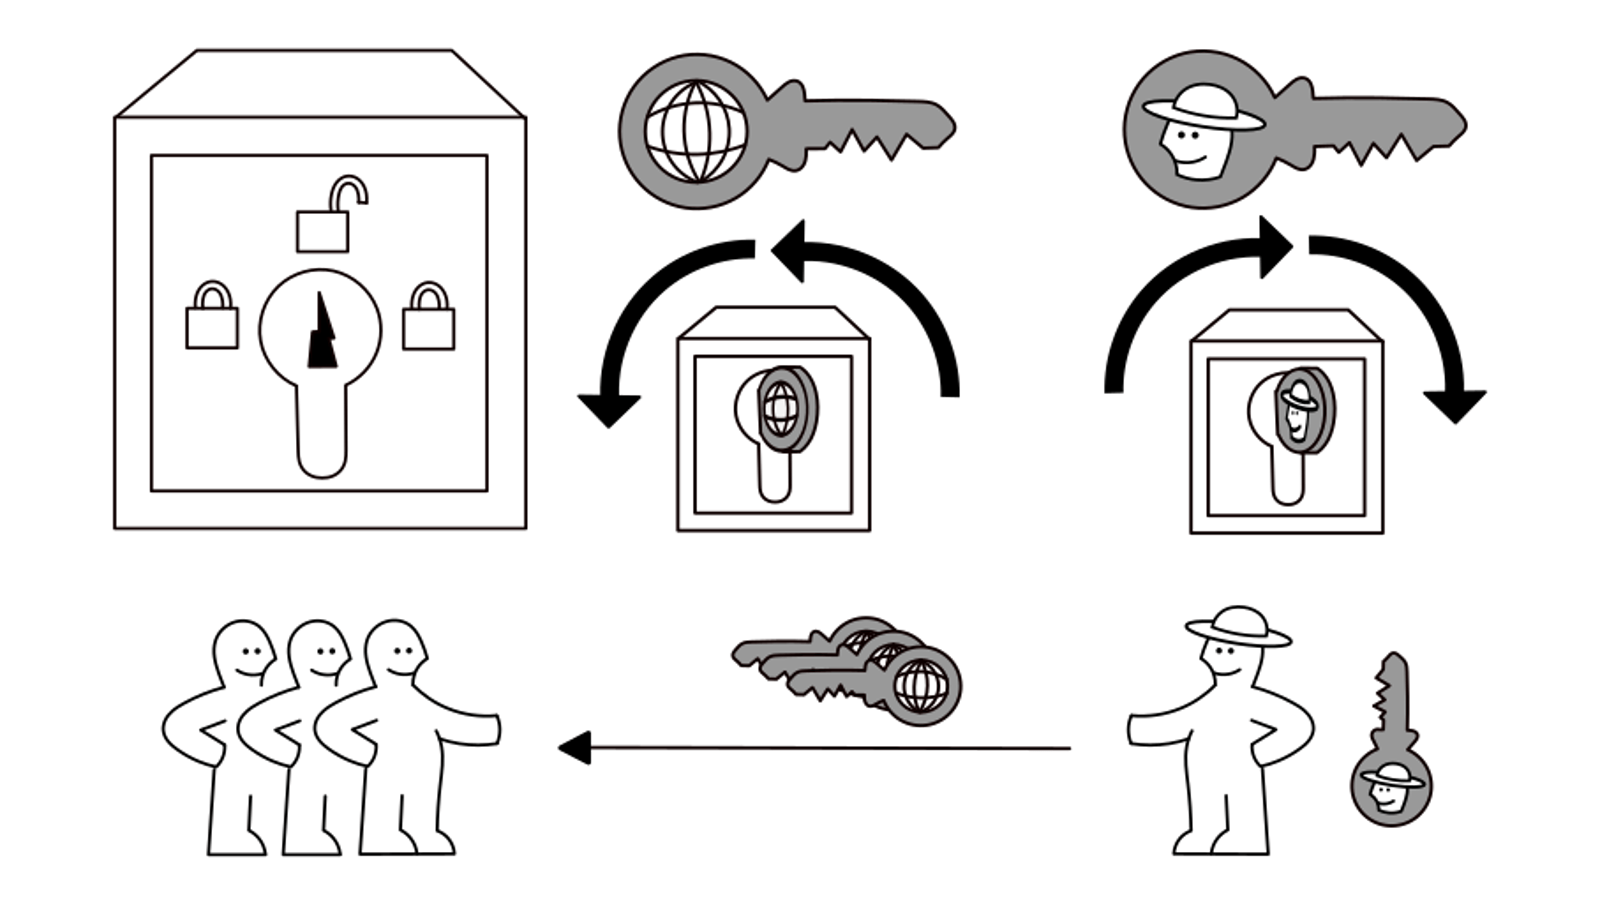 Learn Computing Concepts With IKEA-Style Diagrams